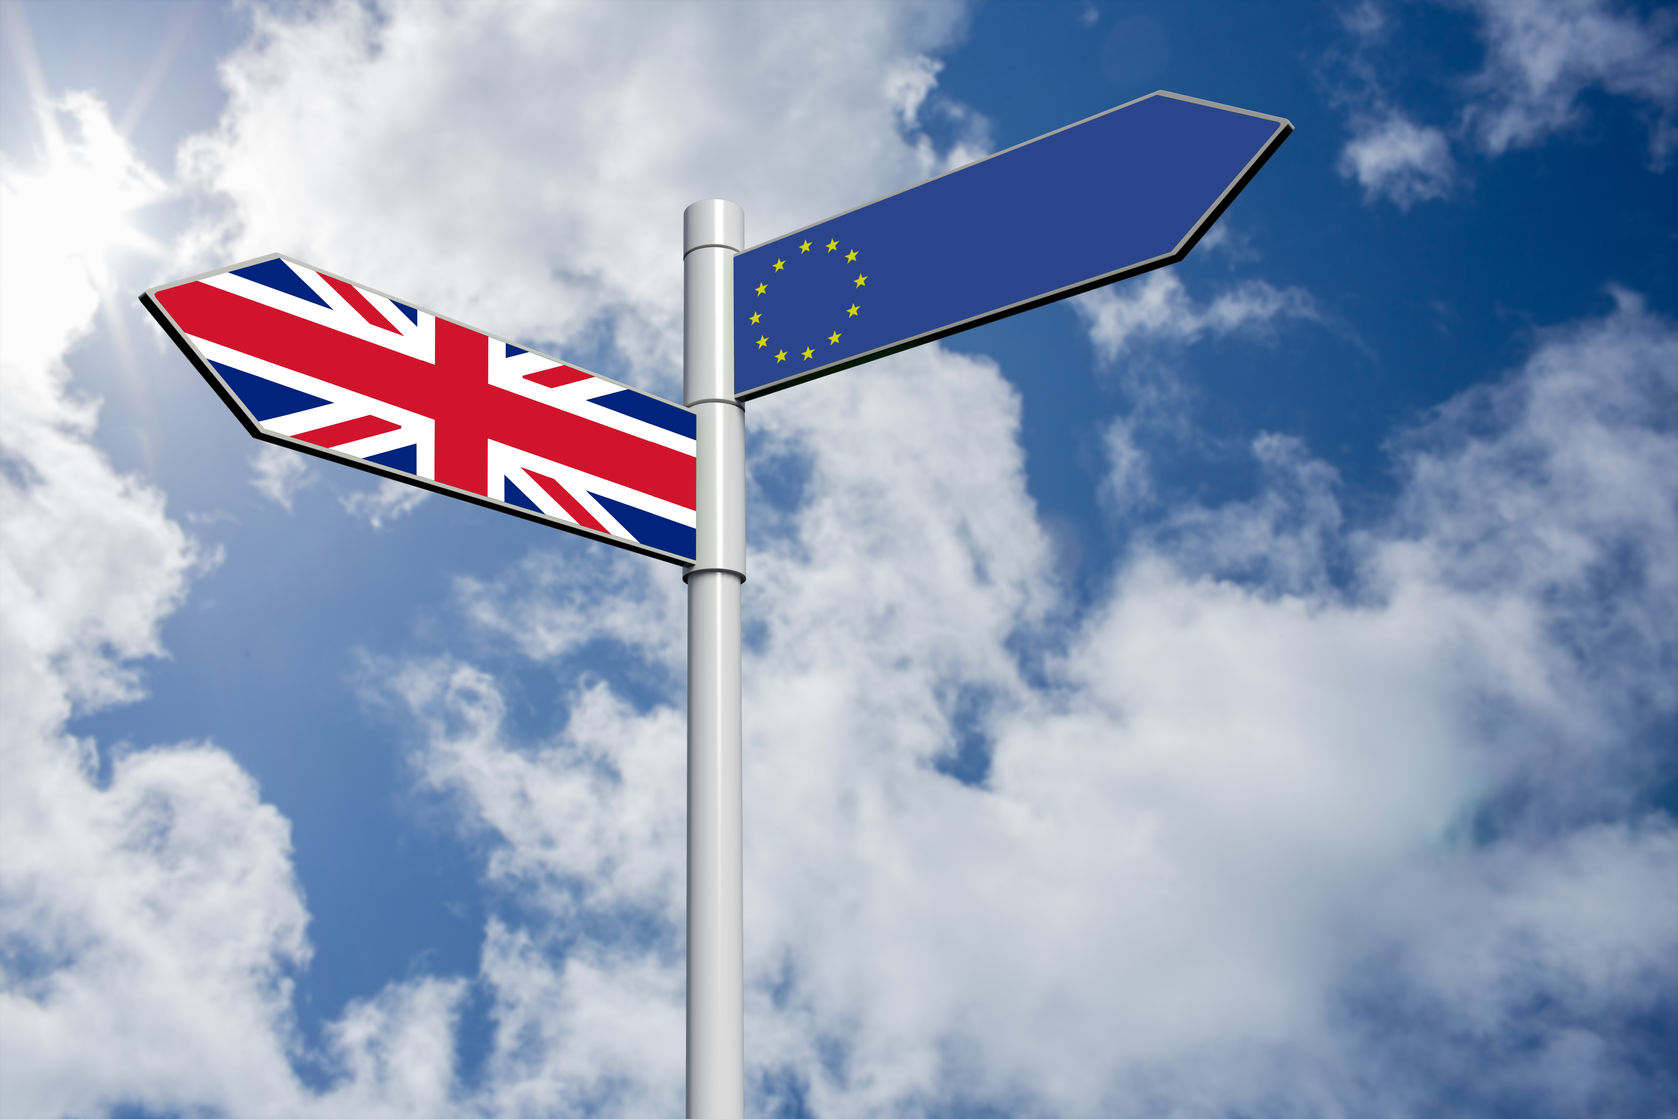 61782630 - european union flag against bright blue sky with clouds